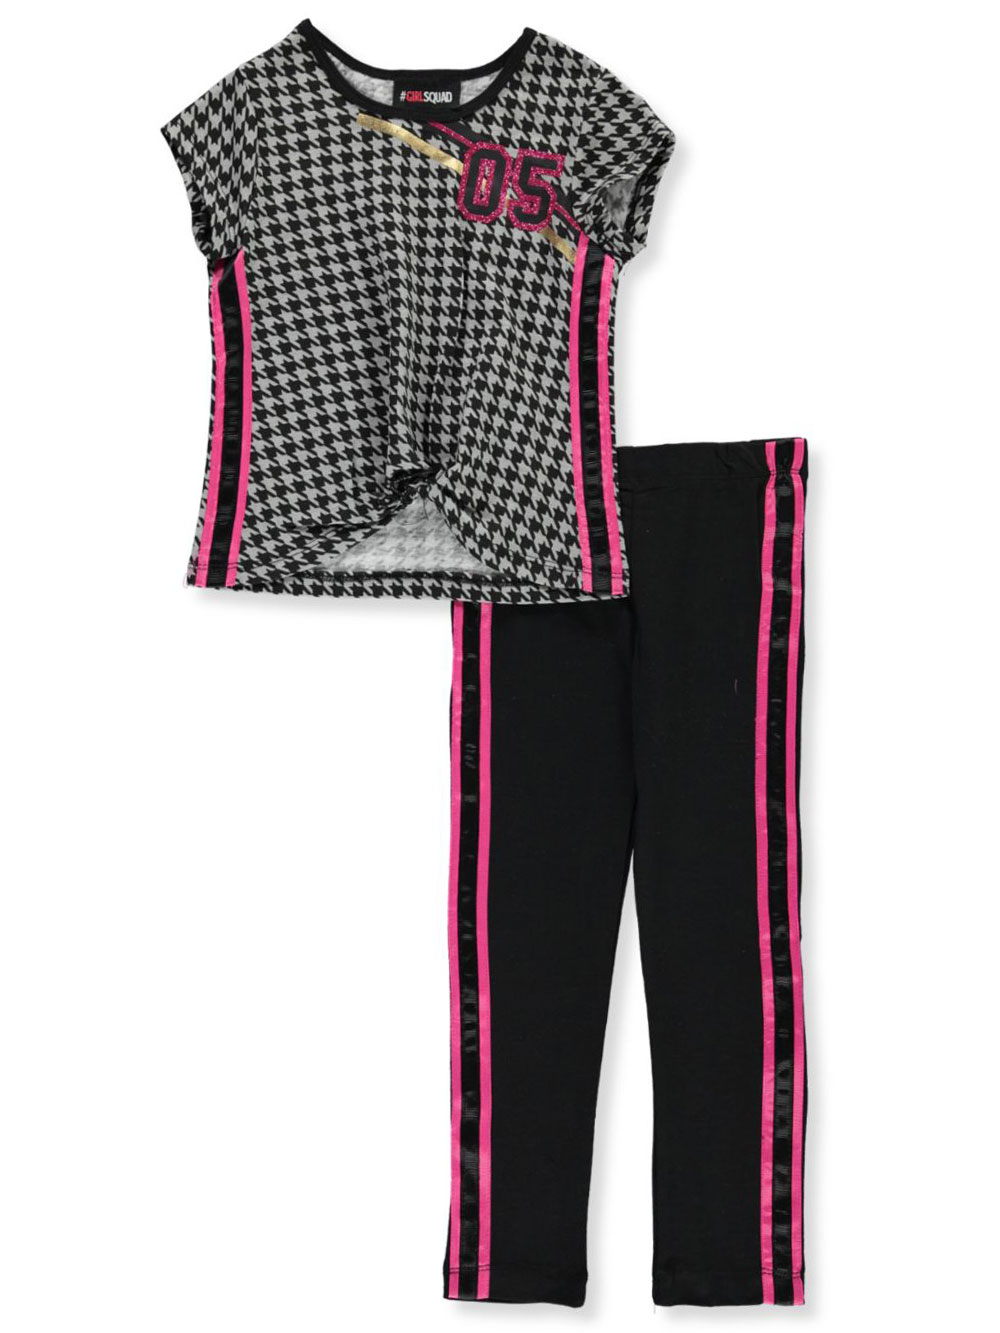 Houndstooth 05 2-Piece Pants Set Outfit